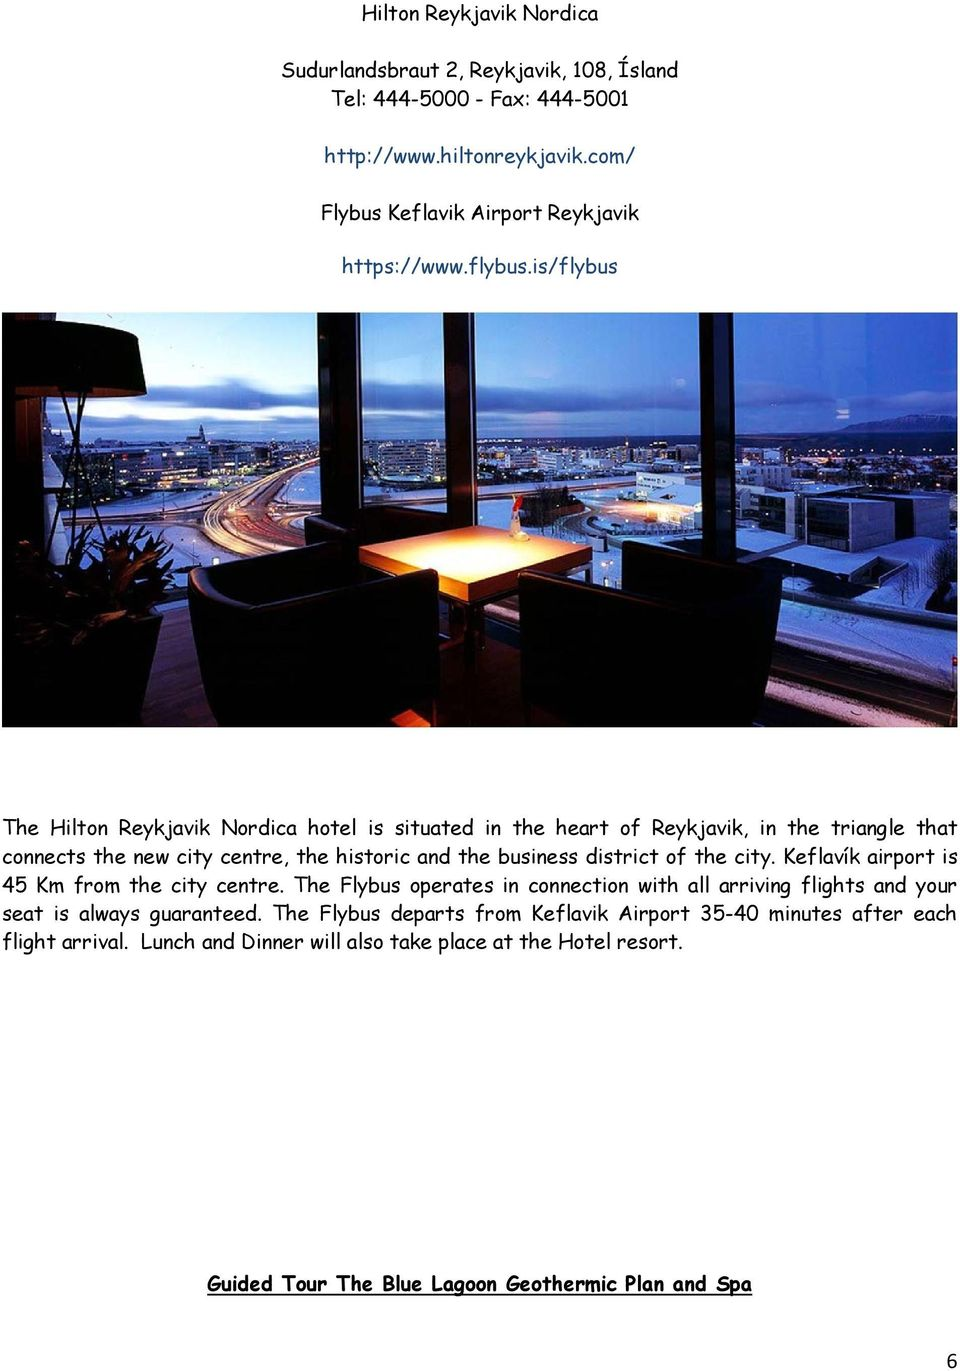 is/flybus The Hilton Reykjavik Nordica hotel is situated in the heart of Reykjavik, in the triangle that connects the new city centre, the historic and the business district of